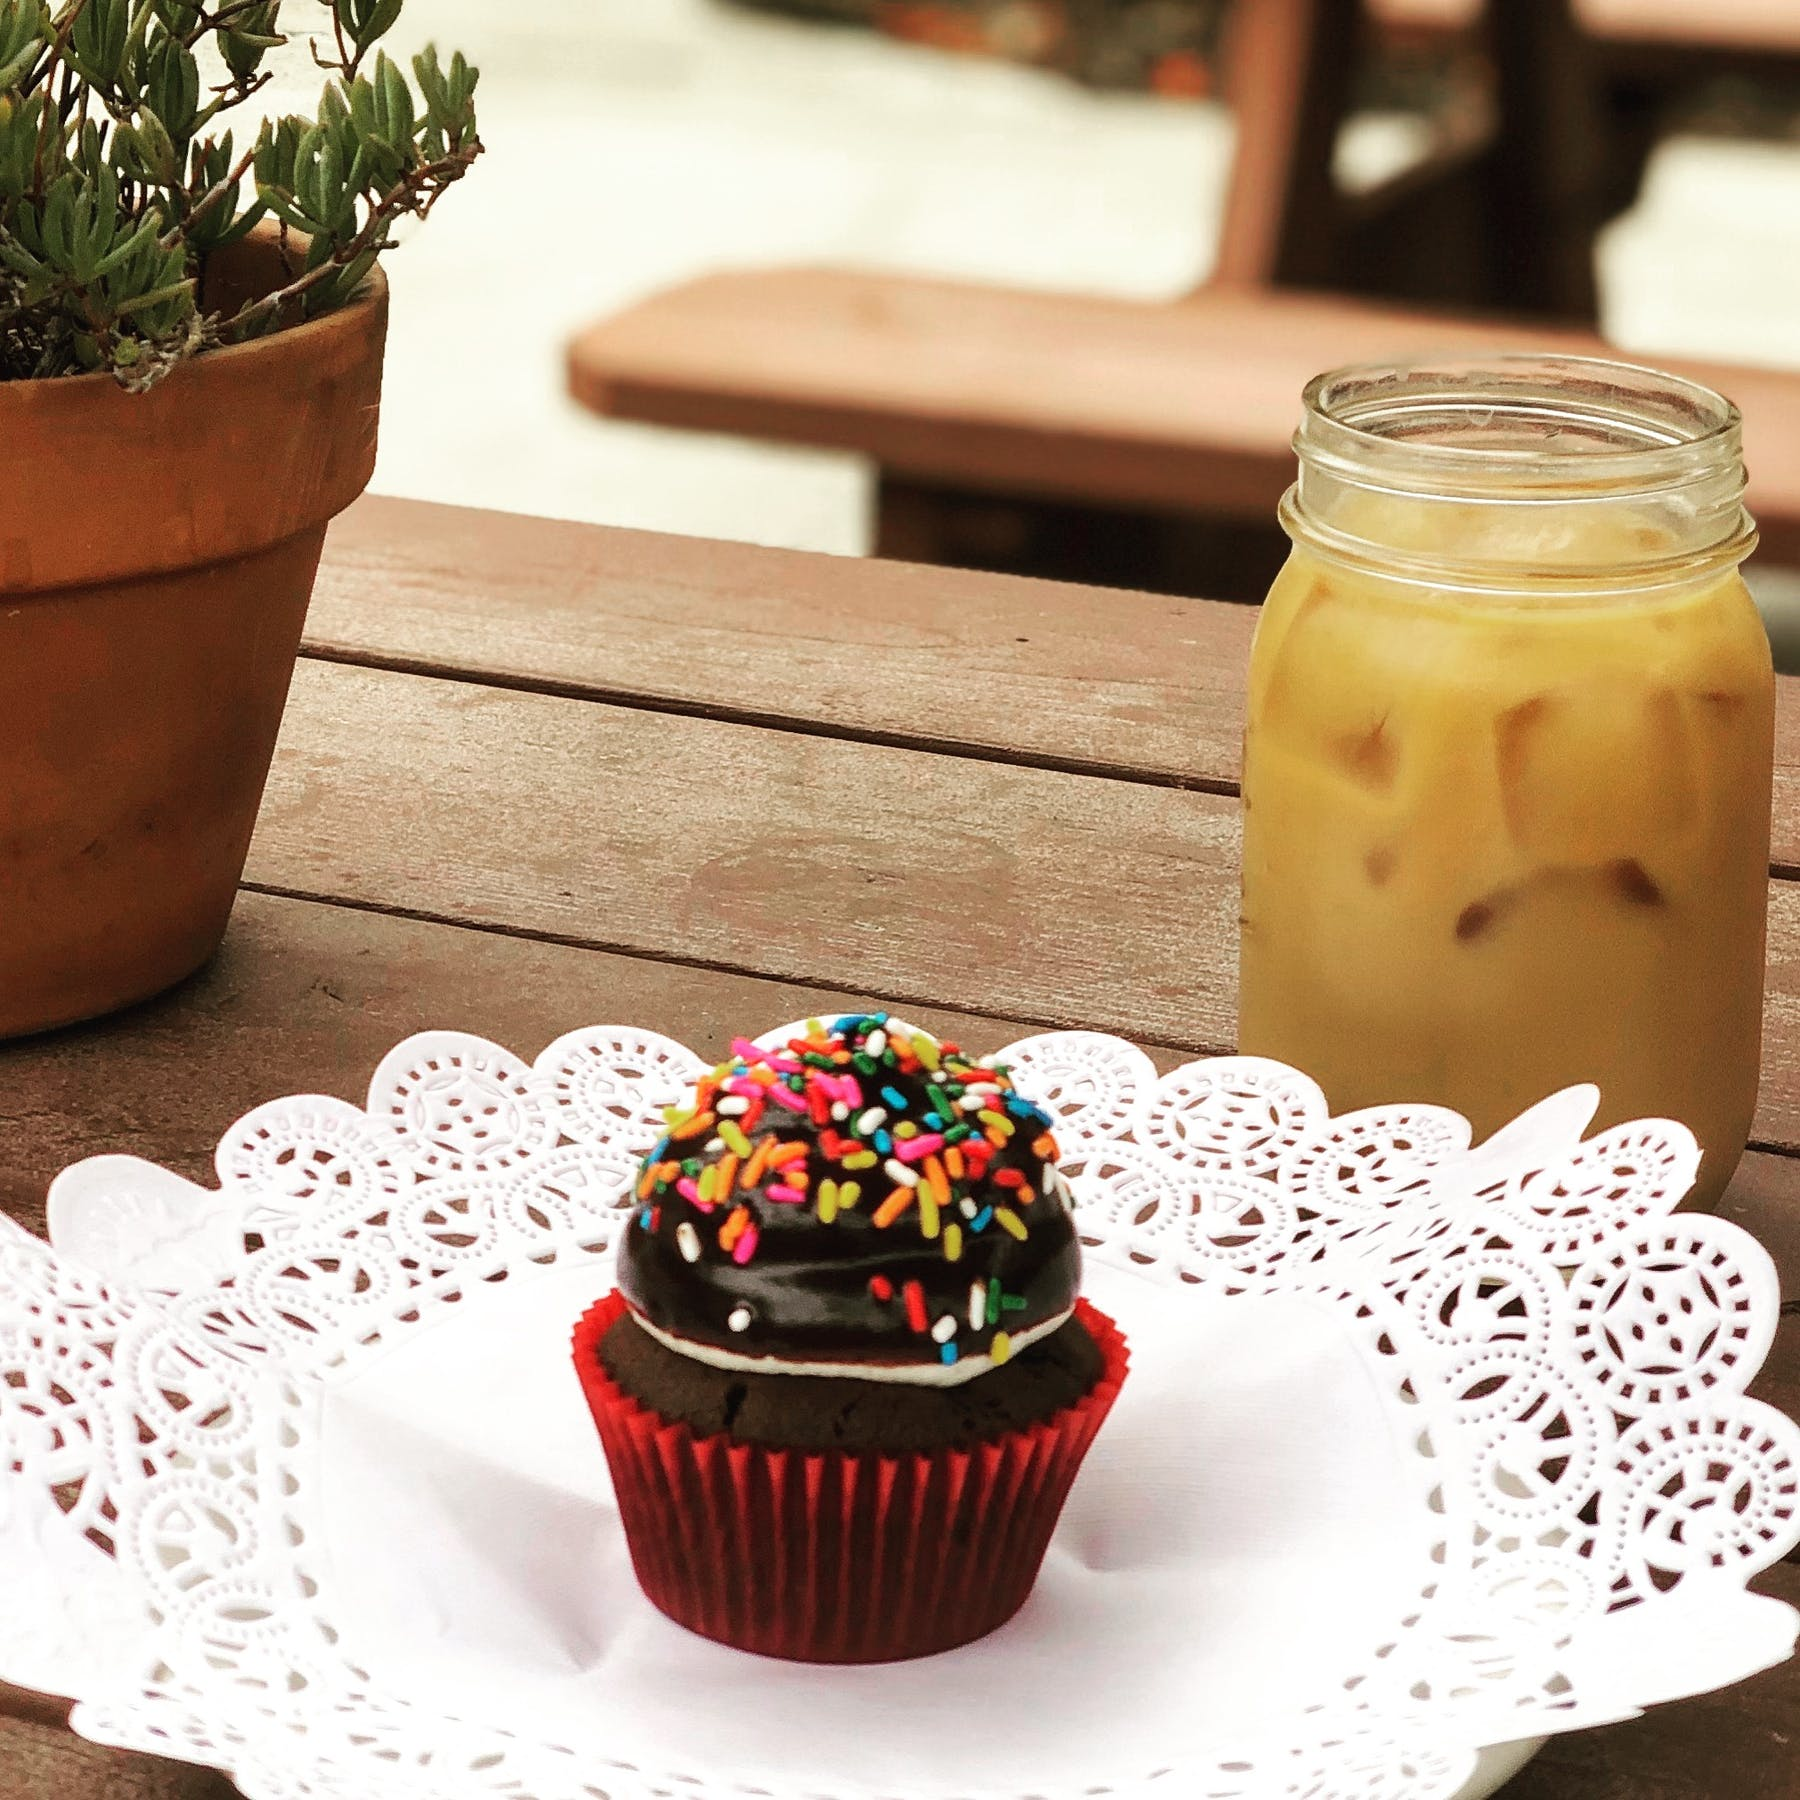 a chocolate cupcake with sprinkles and iced coffee